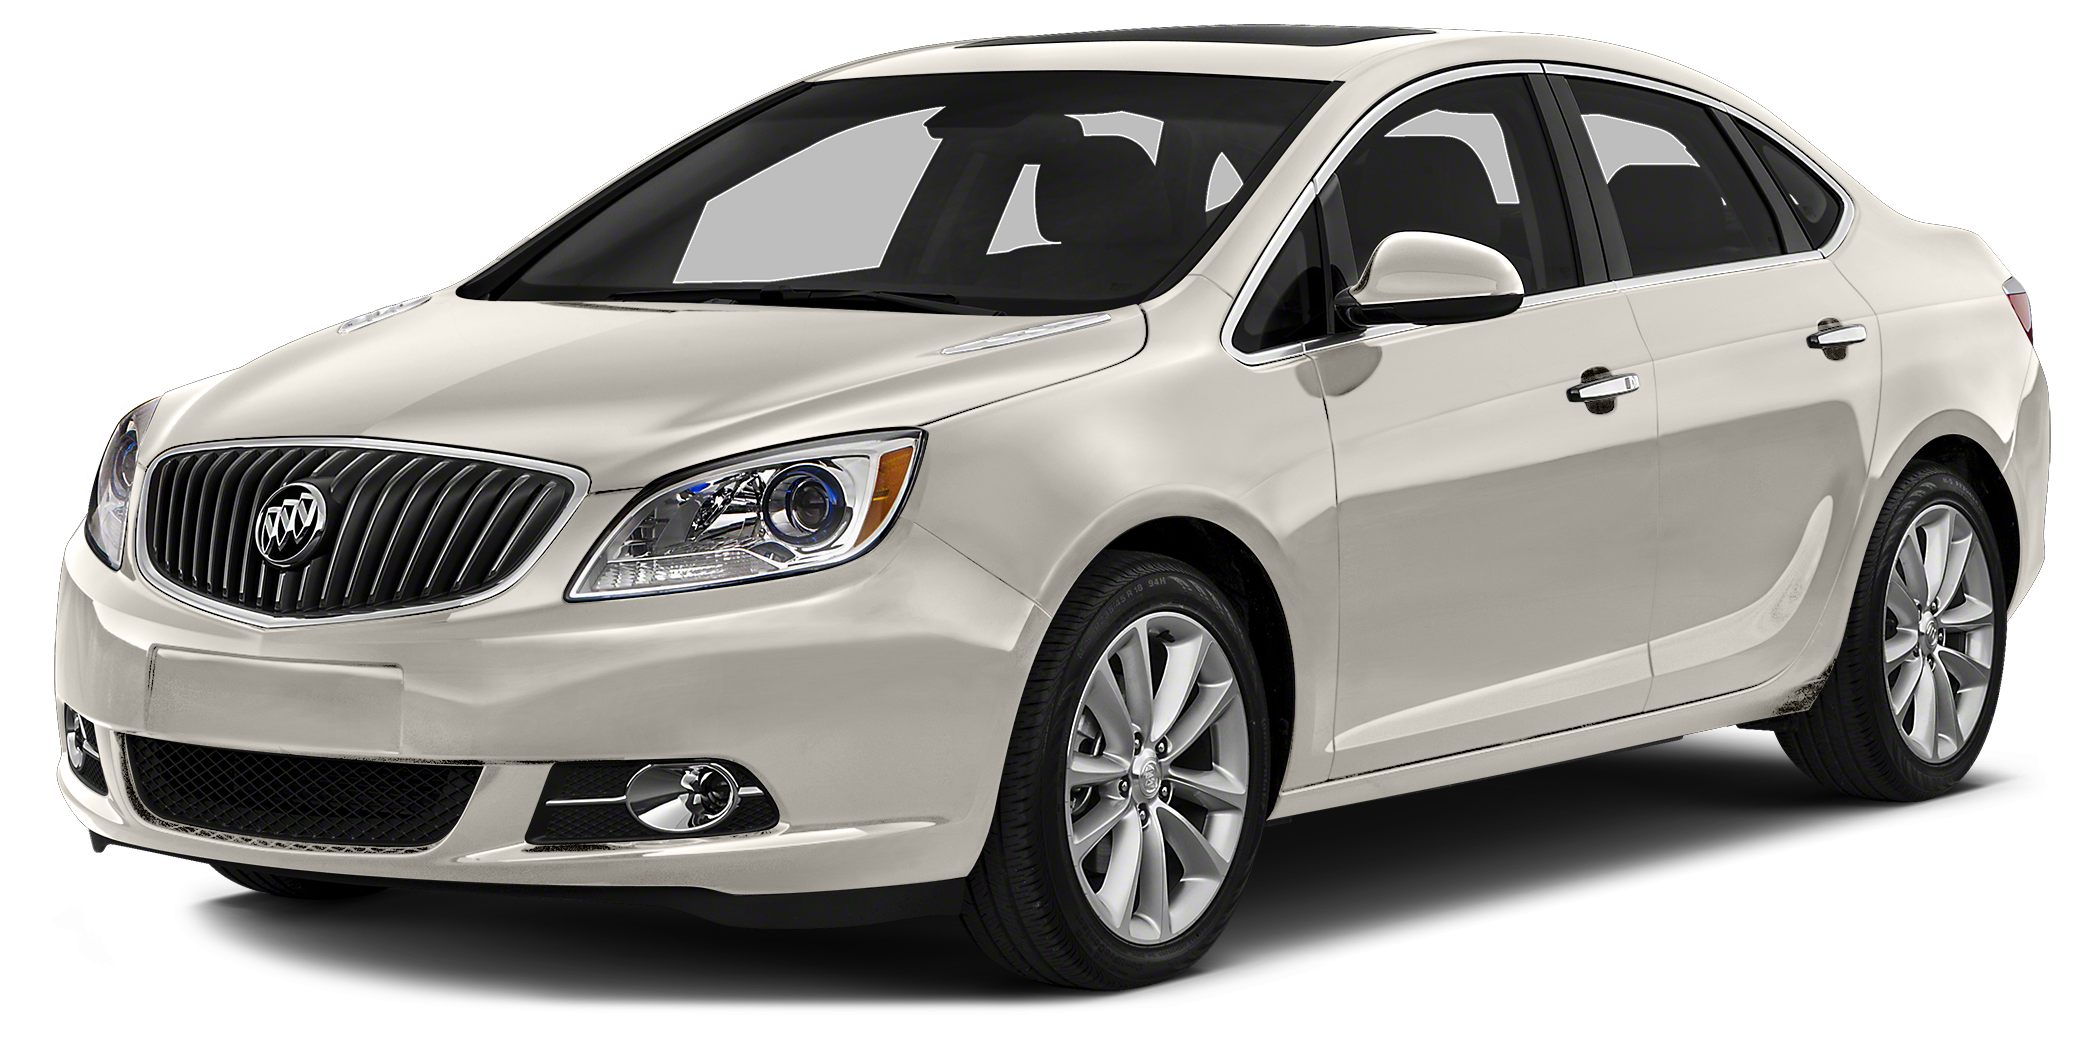 2016 Buick Verano Leather Group This smooth-riding 2016 Buick Verano Leather Group provides extrao